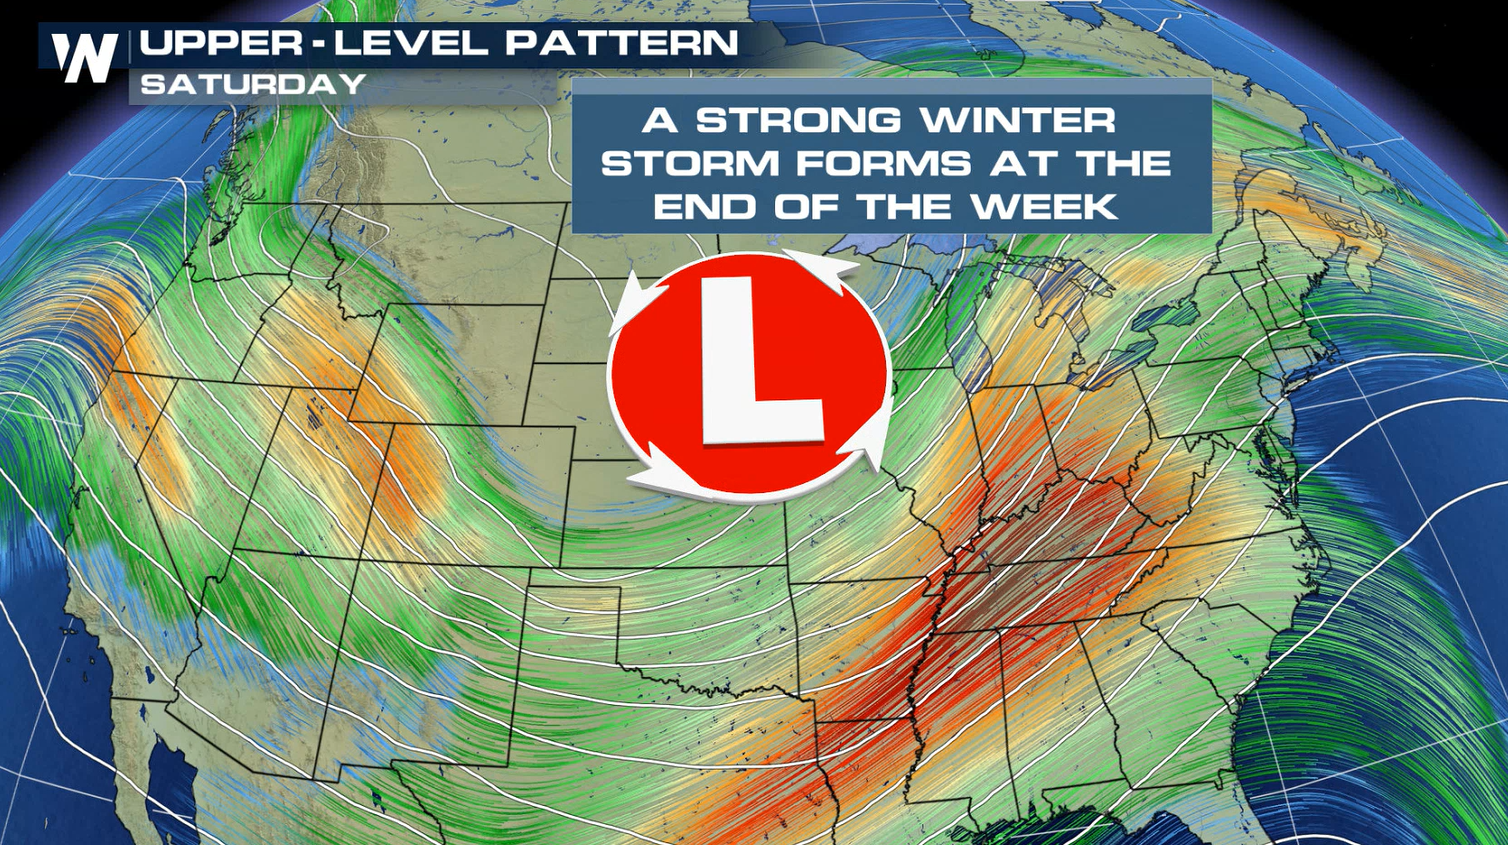 Potential Late-Week Winter Storm for the Upper-Midwest